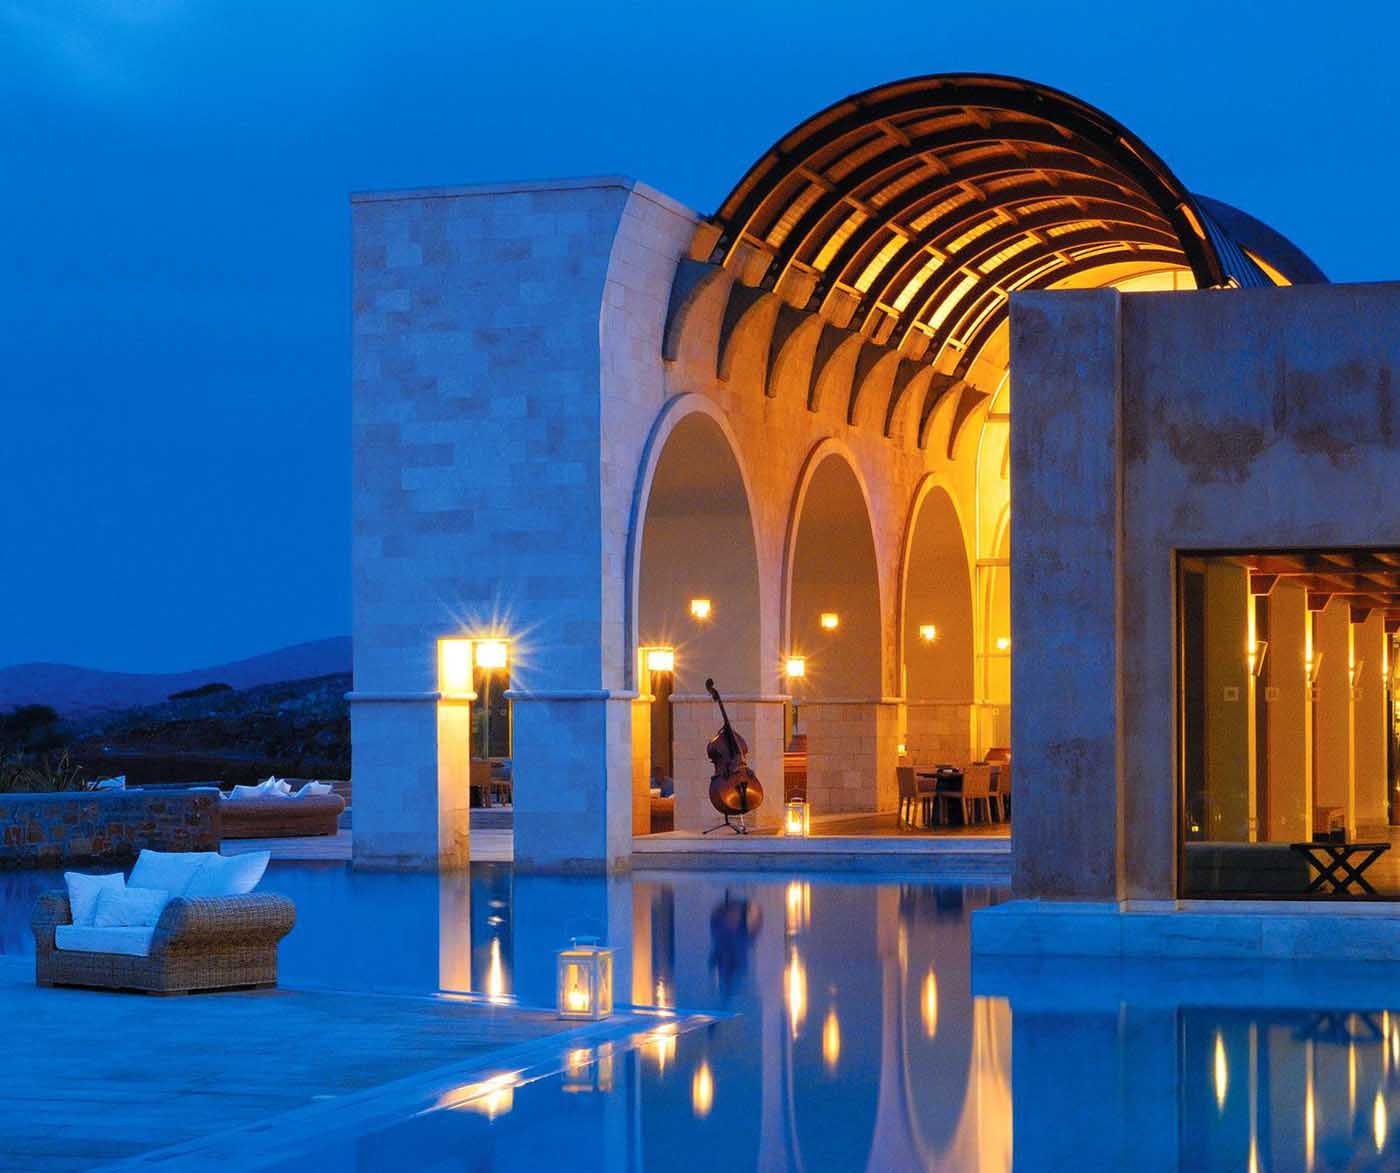 Kamari hotels & resorts, 50% discount for early bookings, Kamari, Santorini, Cyclades Islands, Greece